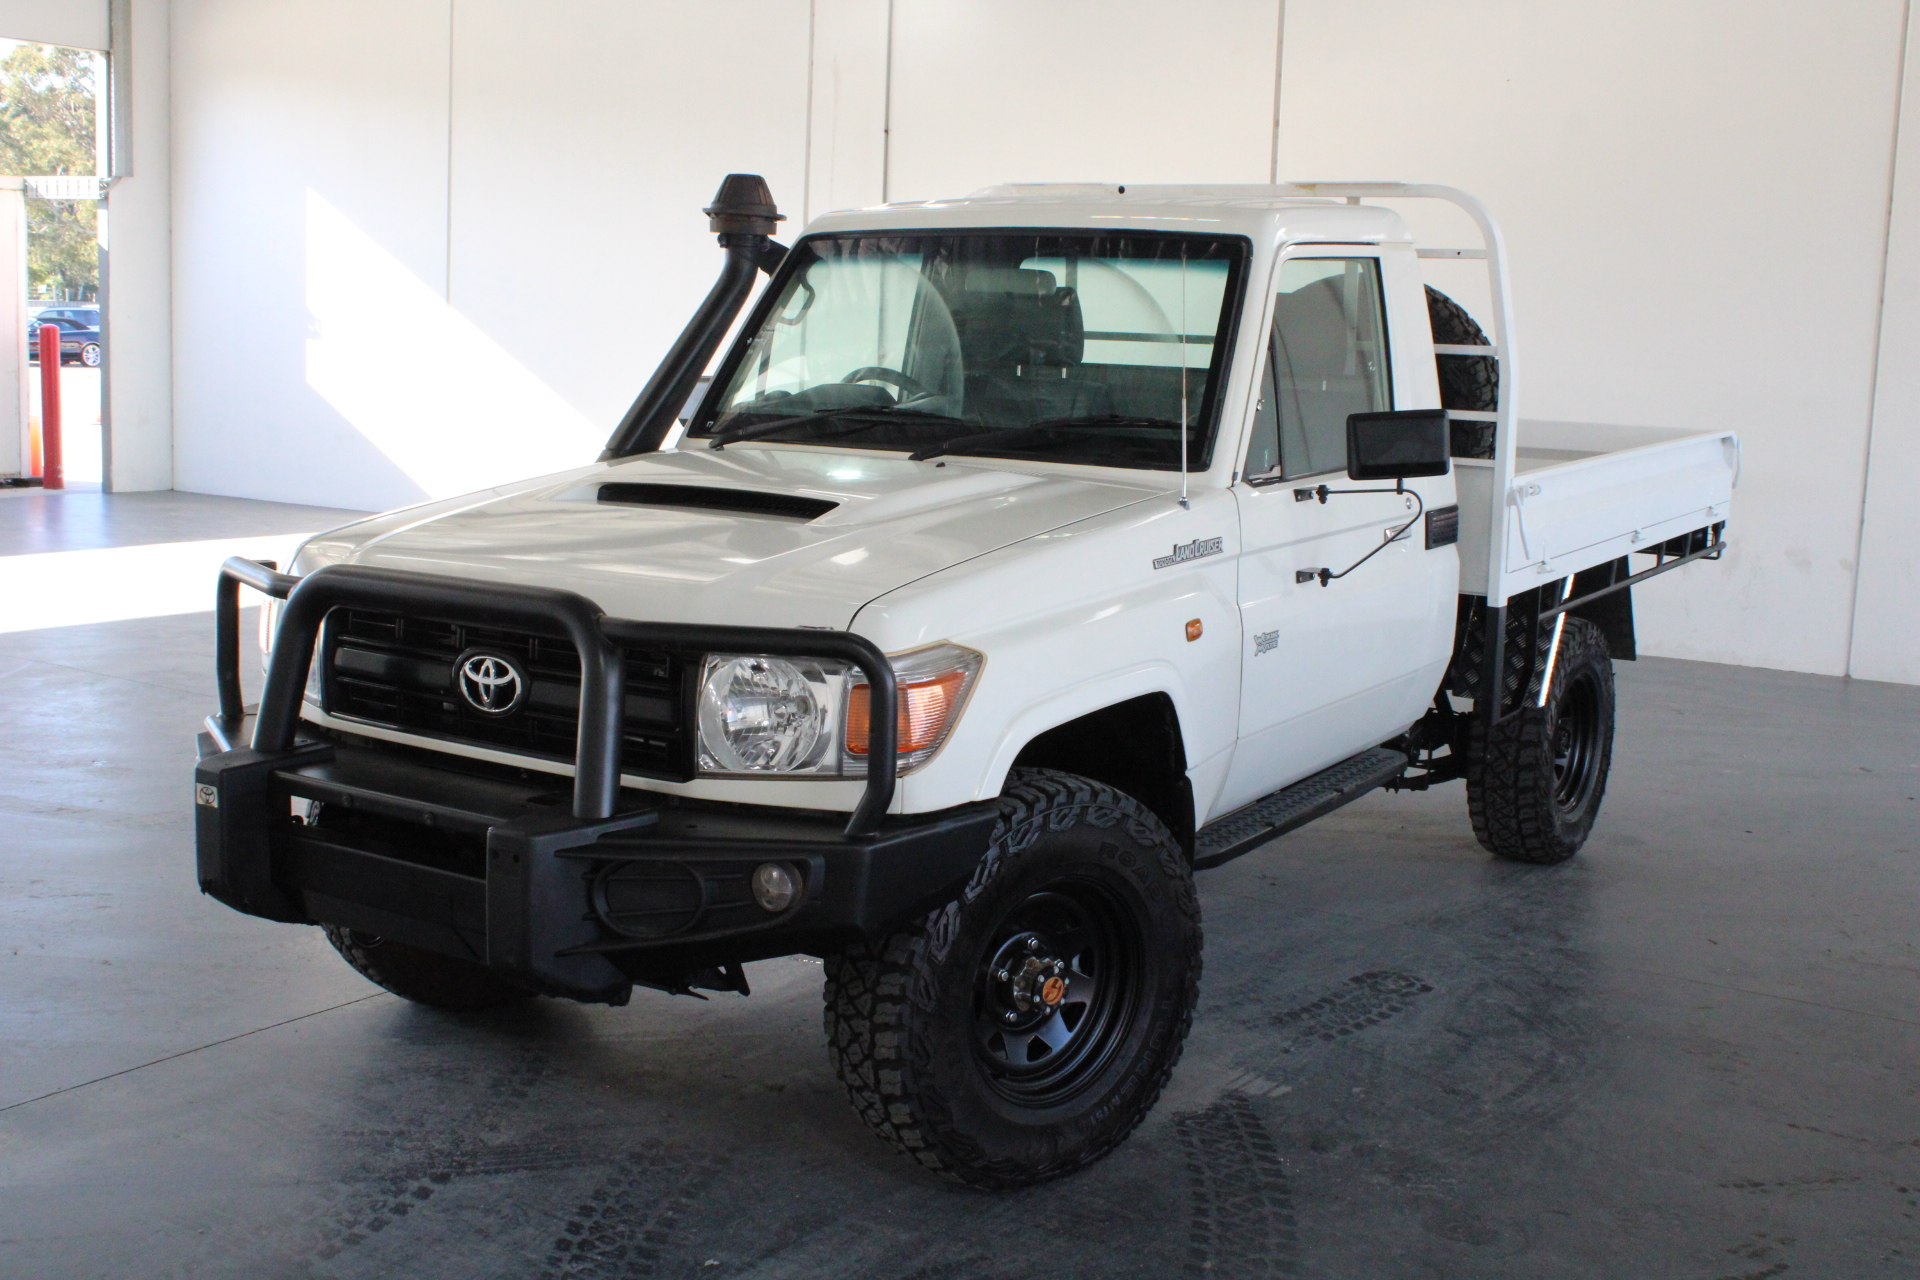 2015 Toyota Landcruiser Workmate (4x4) VDJ79R T/Diesel Manual Cab Chassis